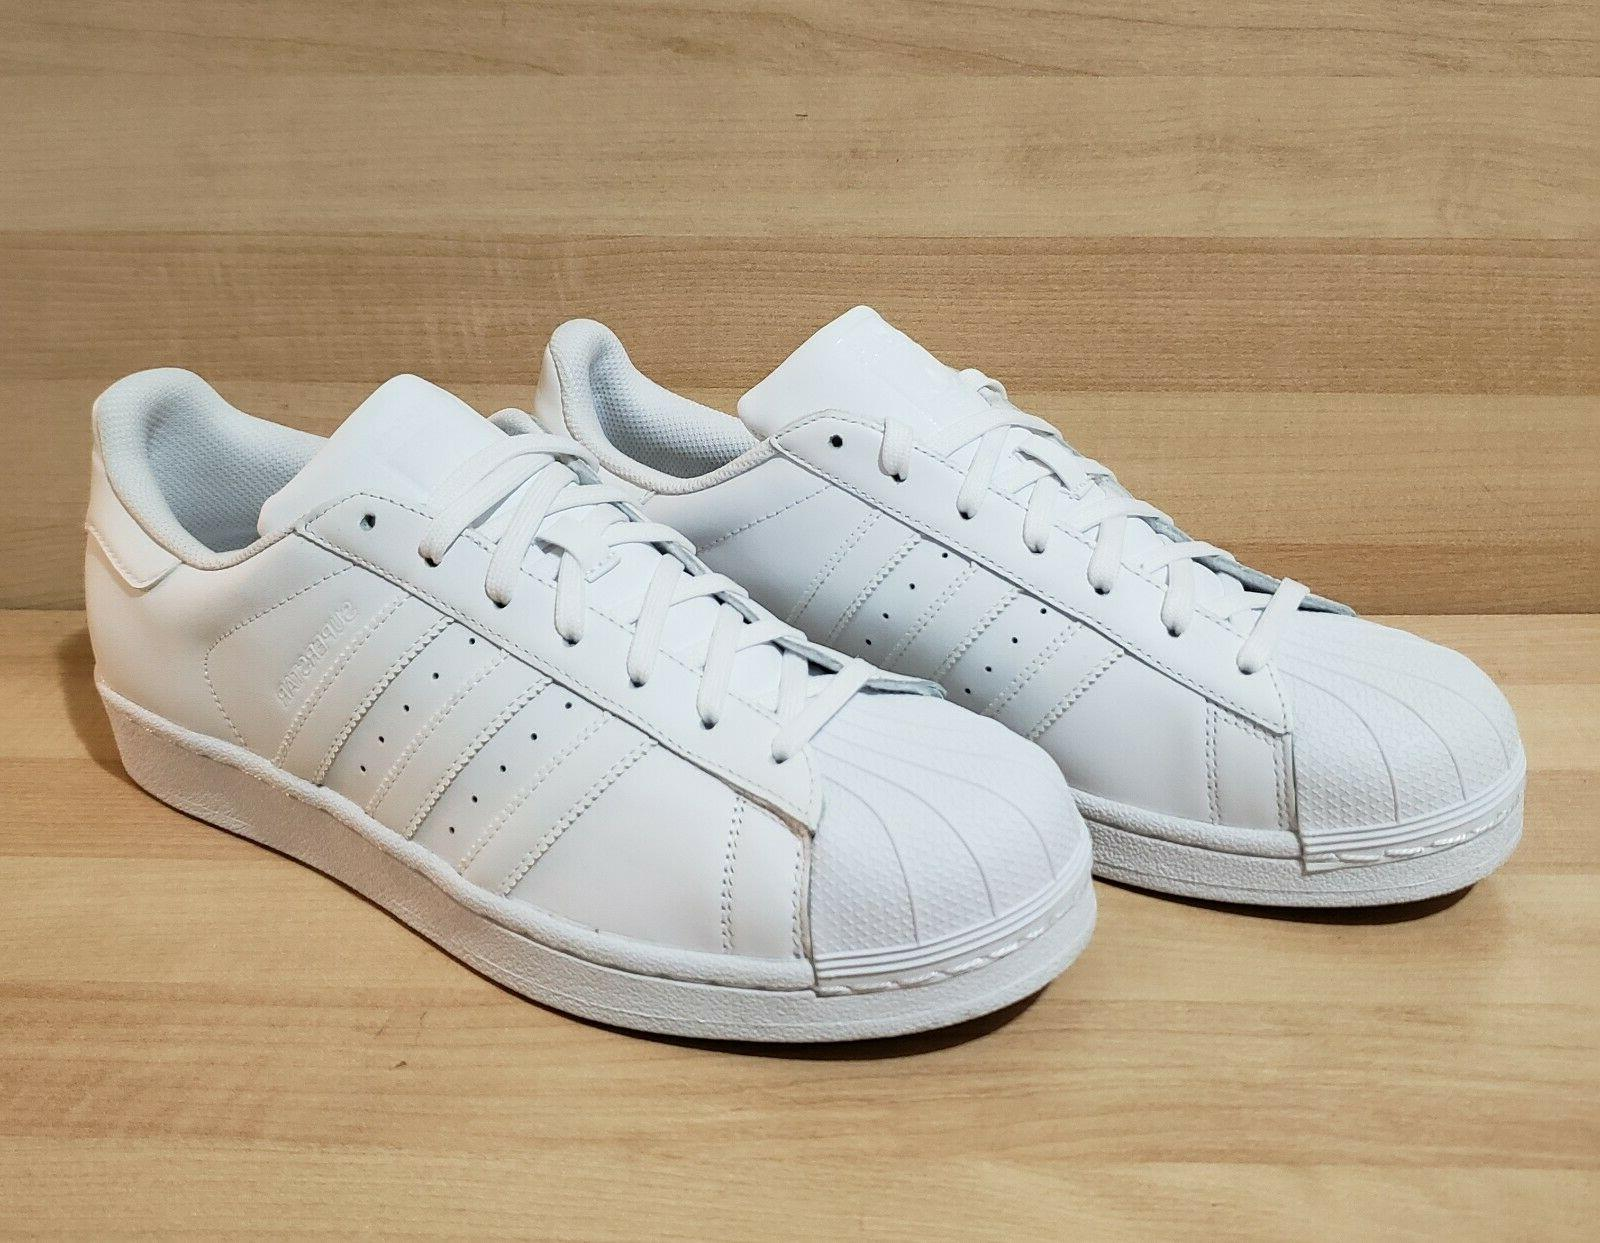 Womens ADIDAS Superstar White es Shoes S85139 Claasic Retro